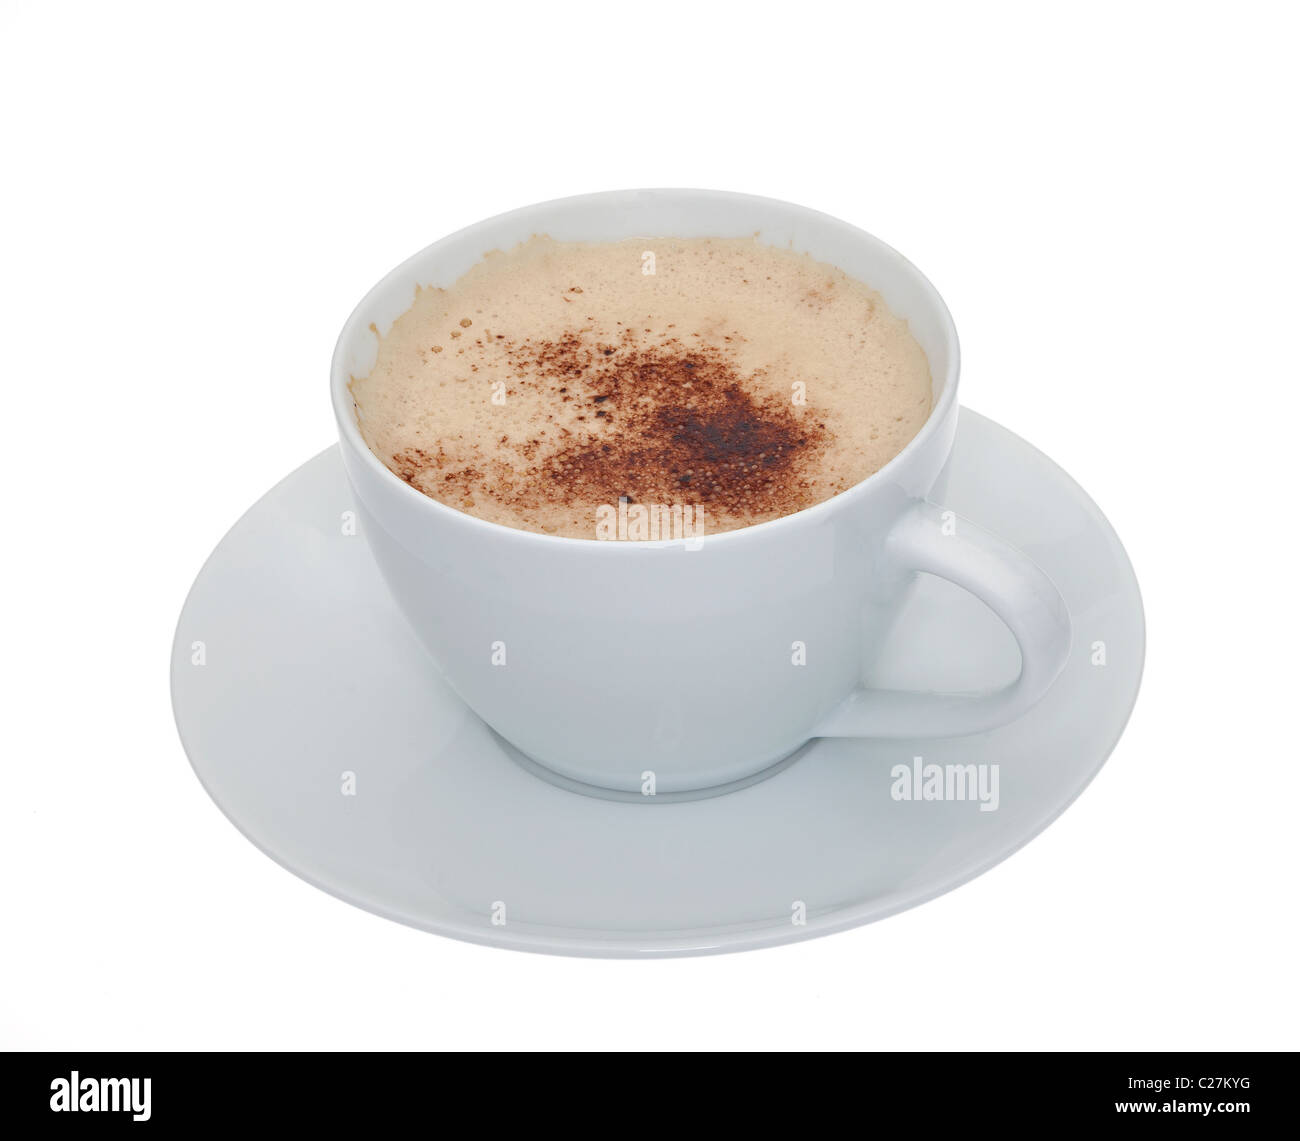 A cup of frothy coffee in a white cup and saucer isolated against a white background - Stock Image